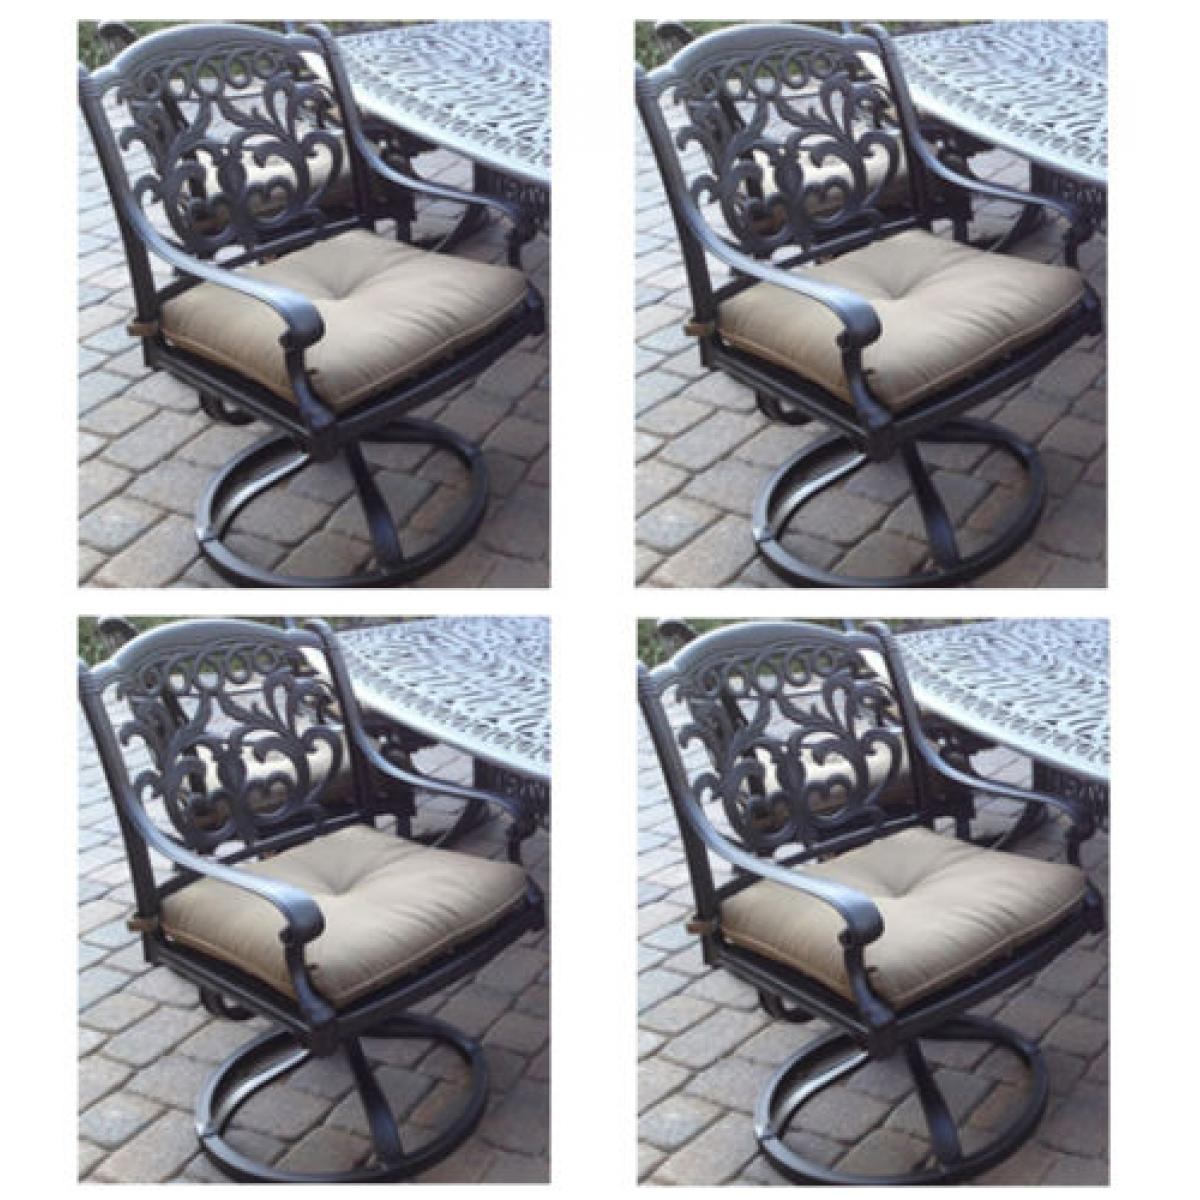 Patio Set Of 4 Dining Chairs Outdoor Cast Aluminum Swivel Rocker